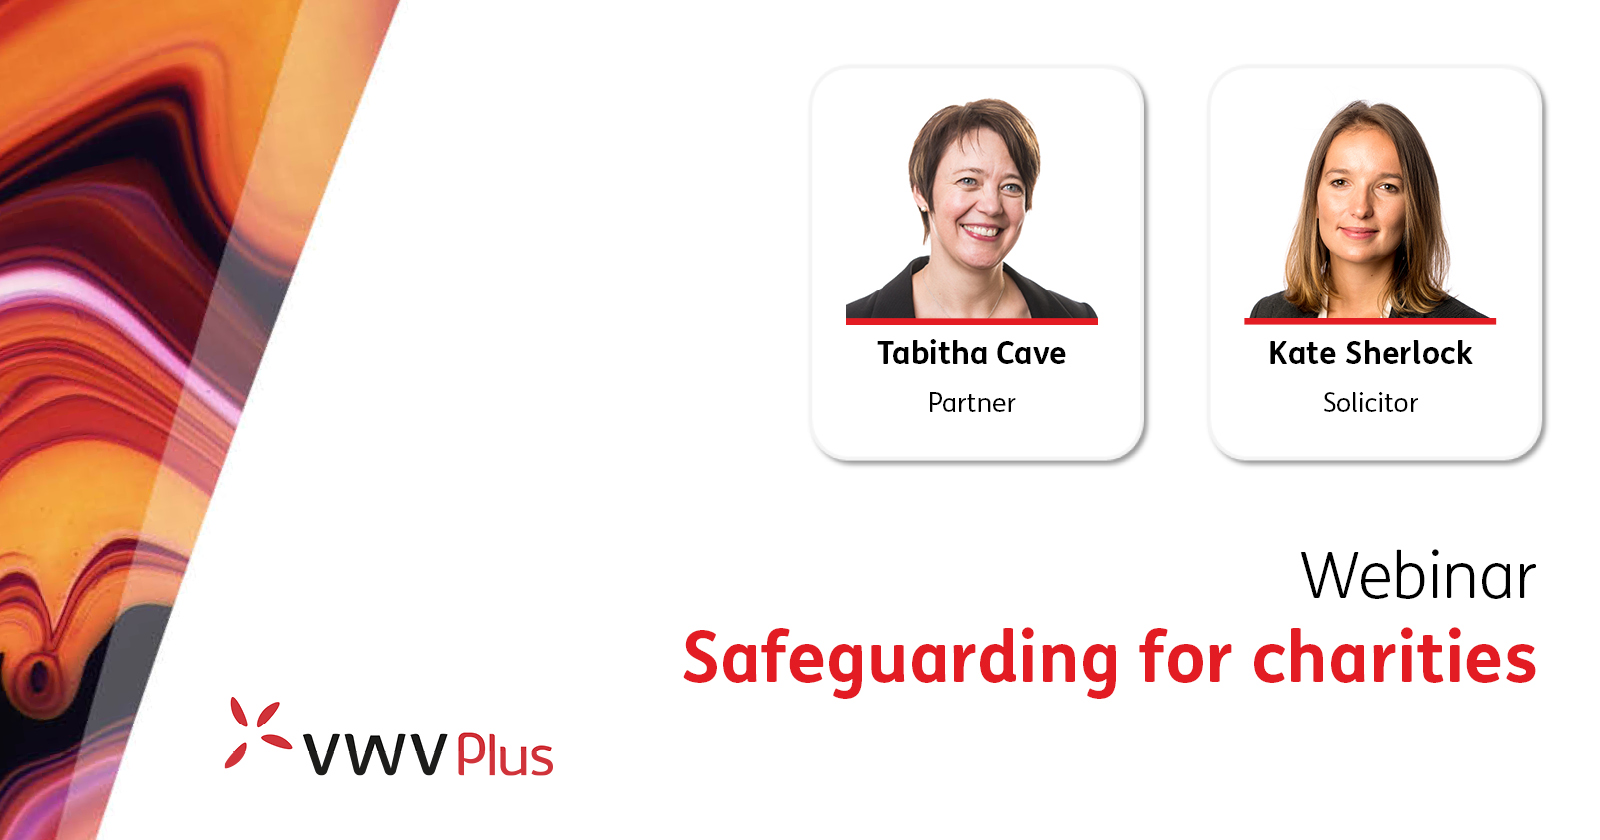 Safeguarding for charities | VWV Plus